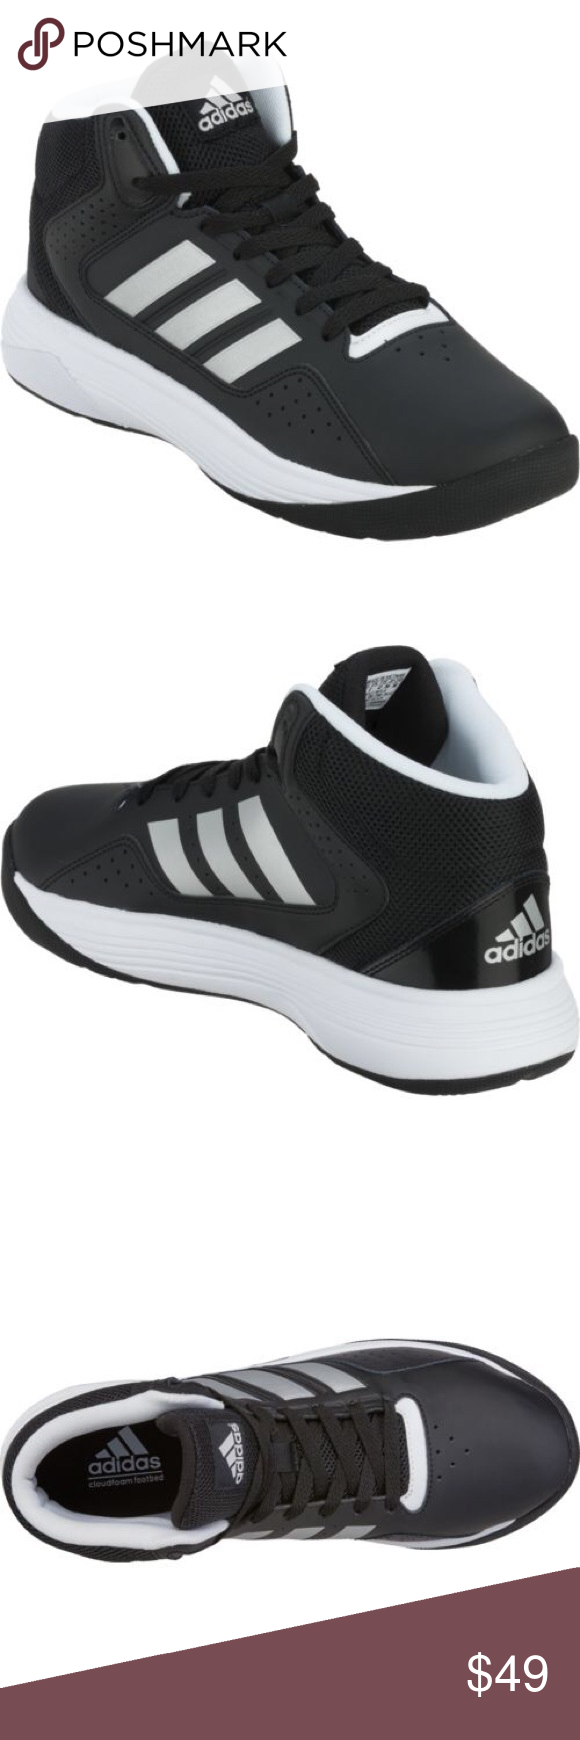 955dfd27d05b ... 50% off mens adidas neo label b ball shoes size 13 nwt mens neo label